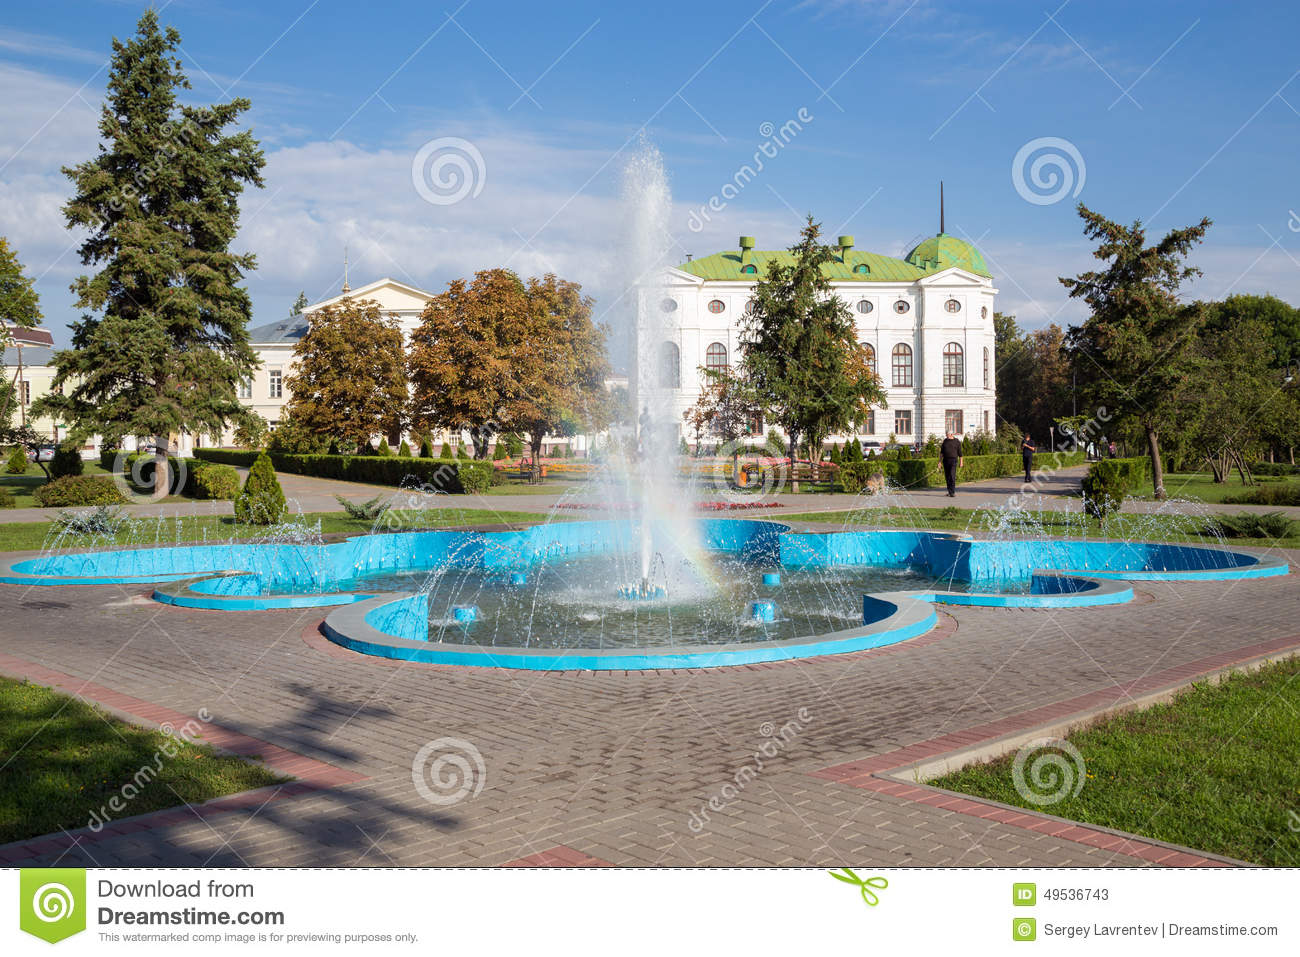 Friendship Park in Tambov: where is located and how to get 22